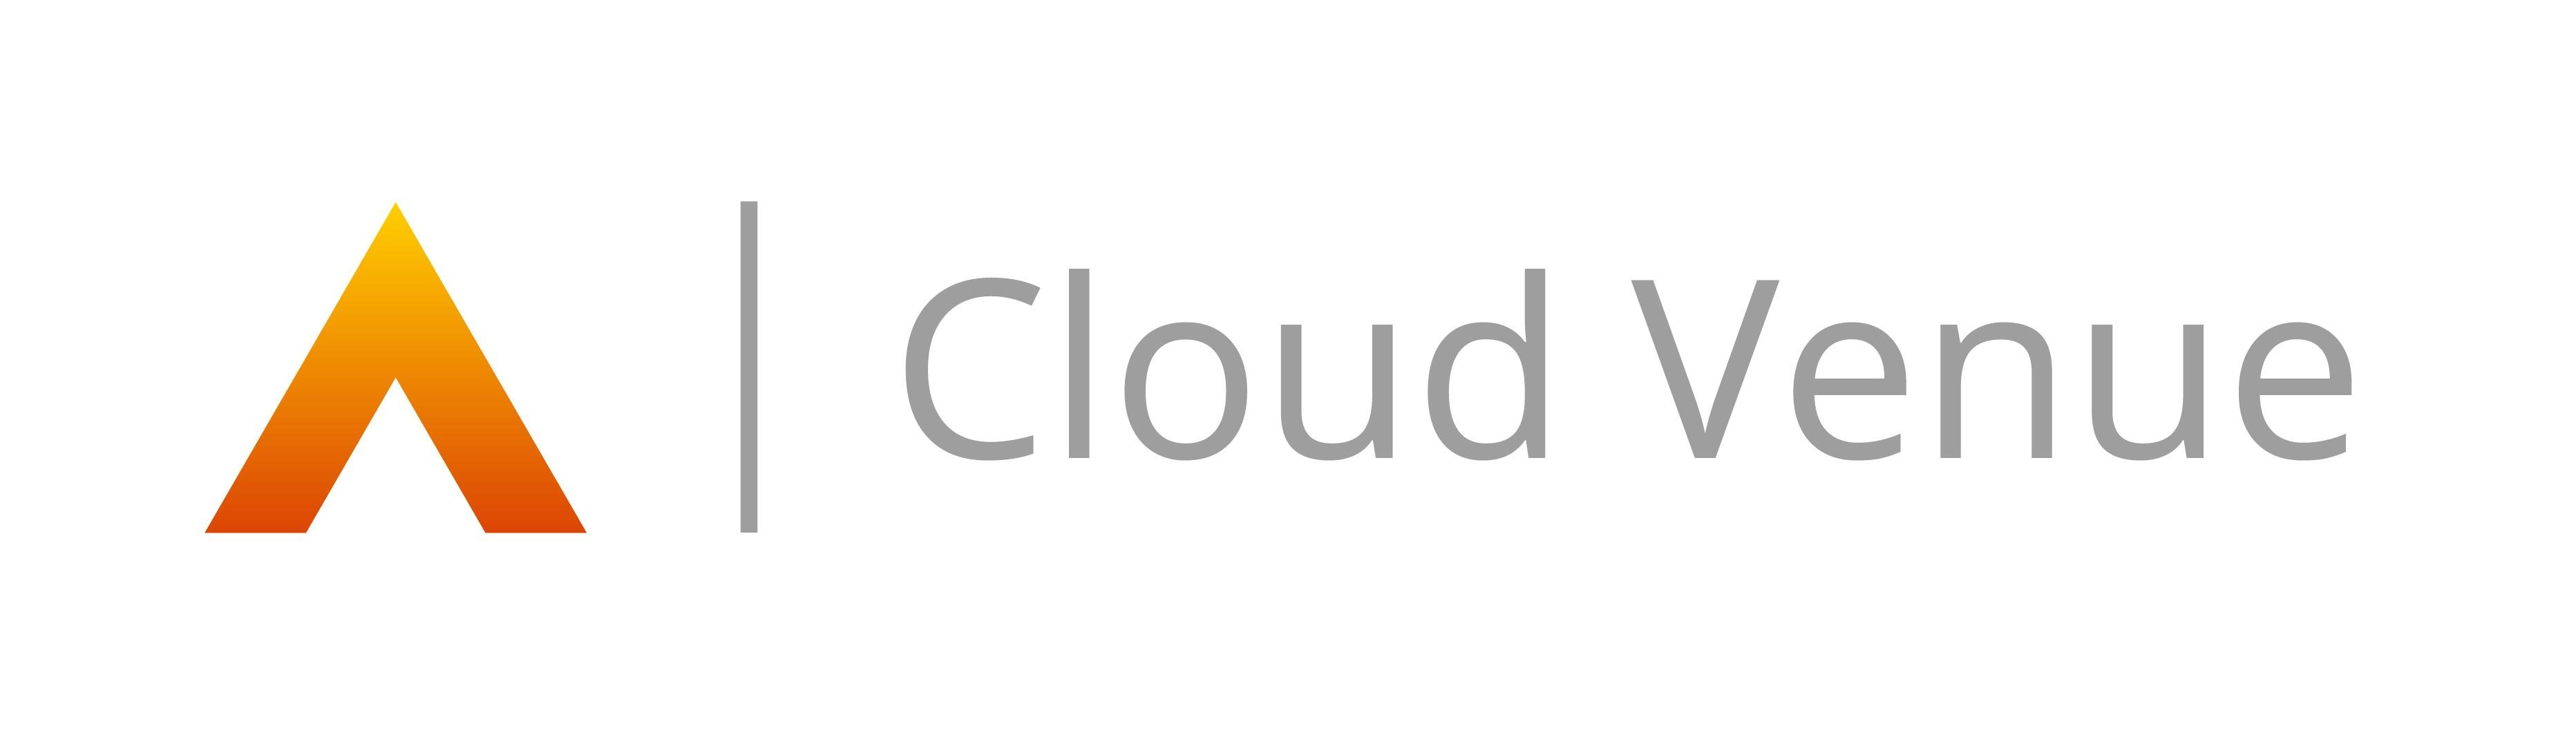 Cloud Venue - Powered by Advanced